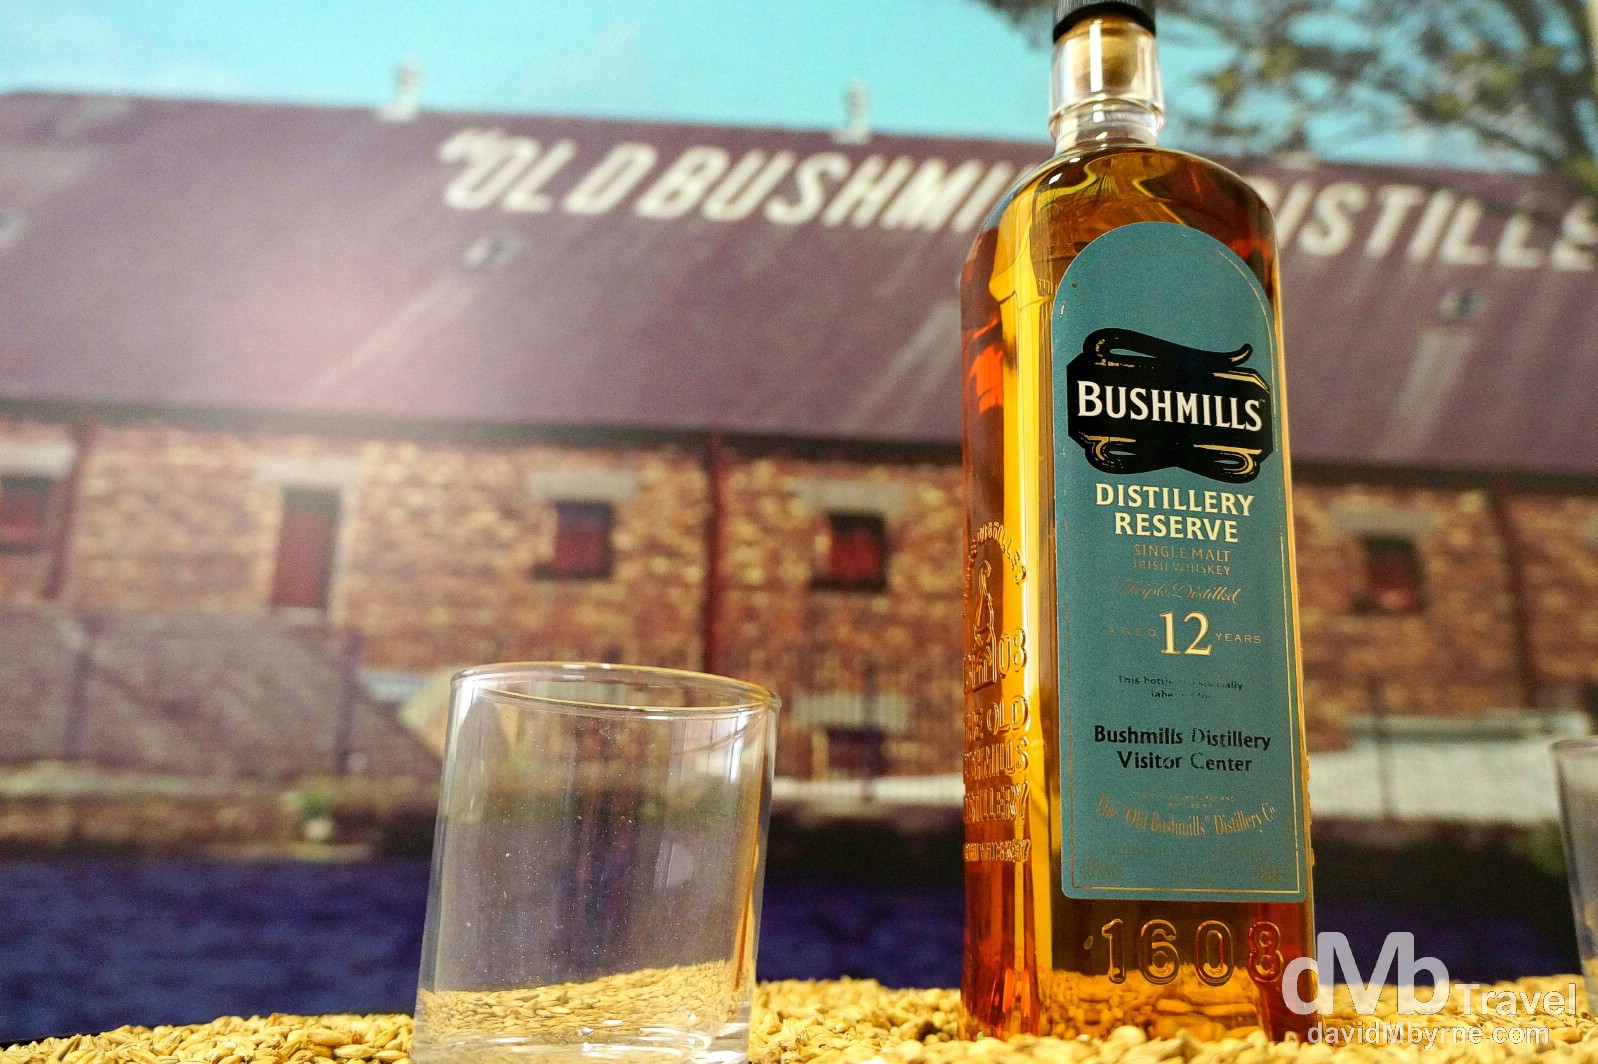 Old Bushmills Distillery, Bushmills, Co. Antrim, Northern Ireland. August 25, 2014.